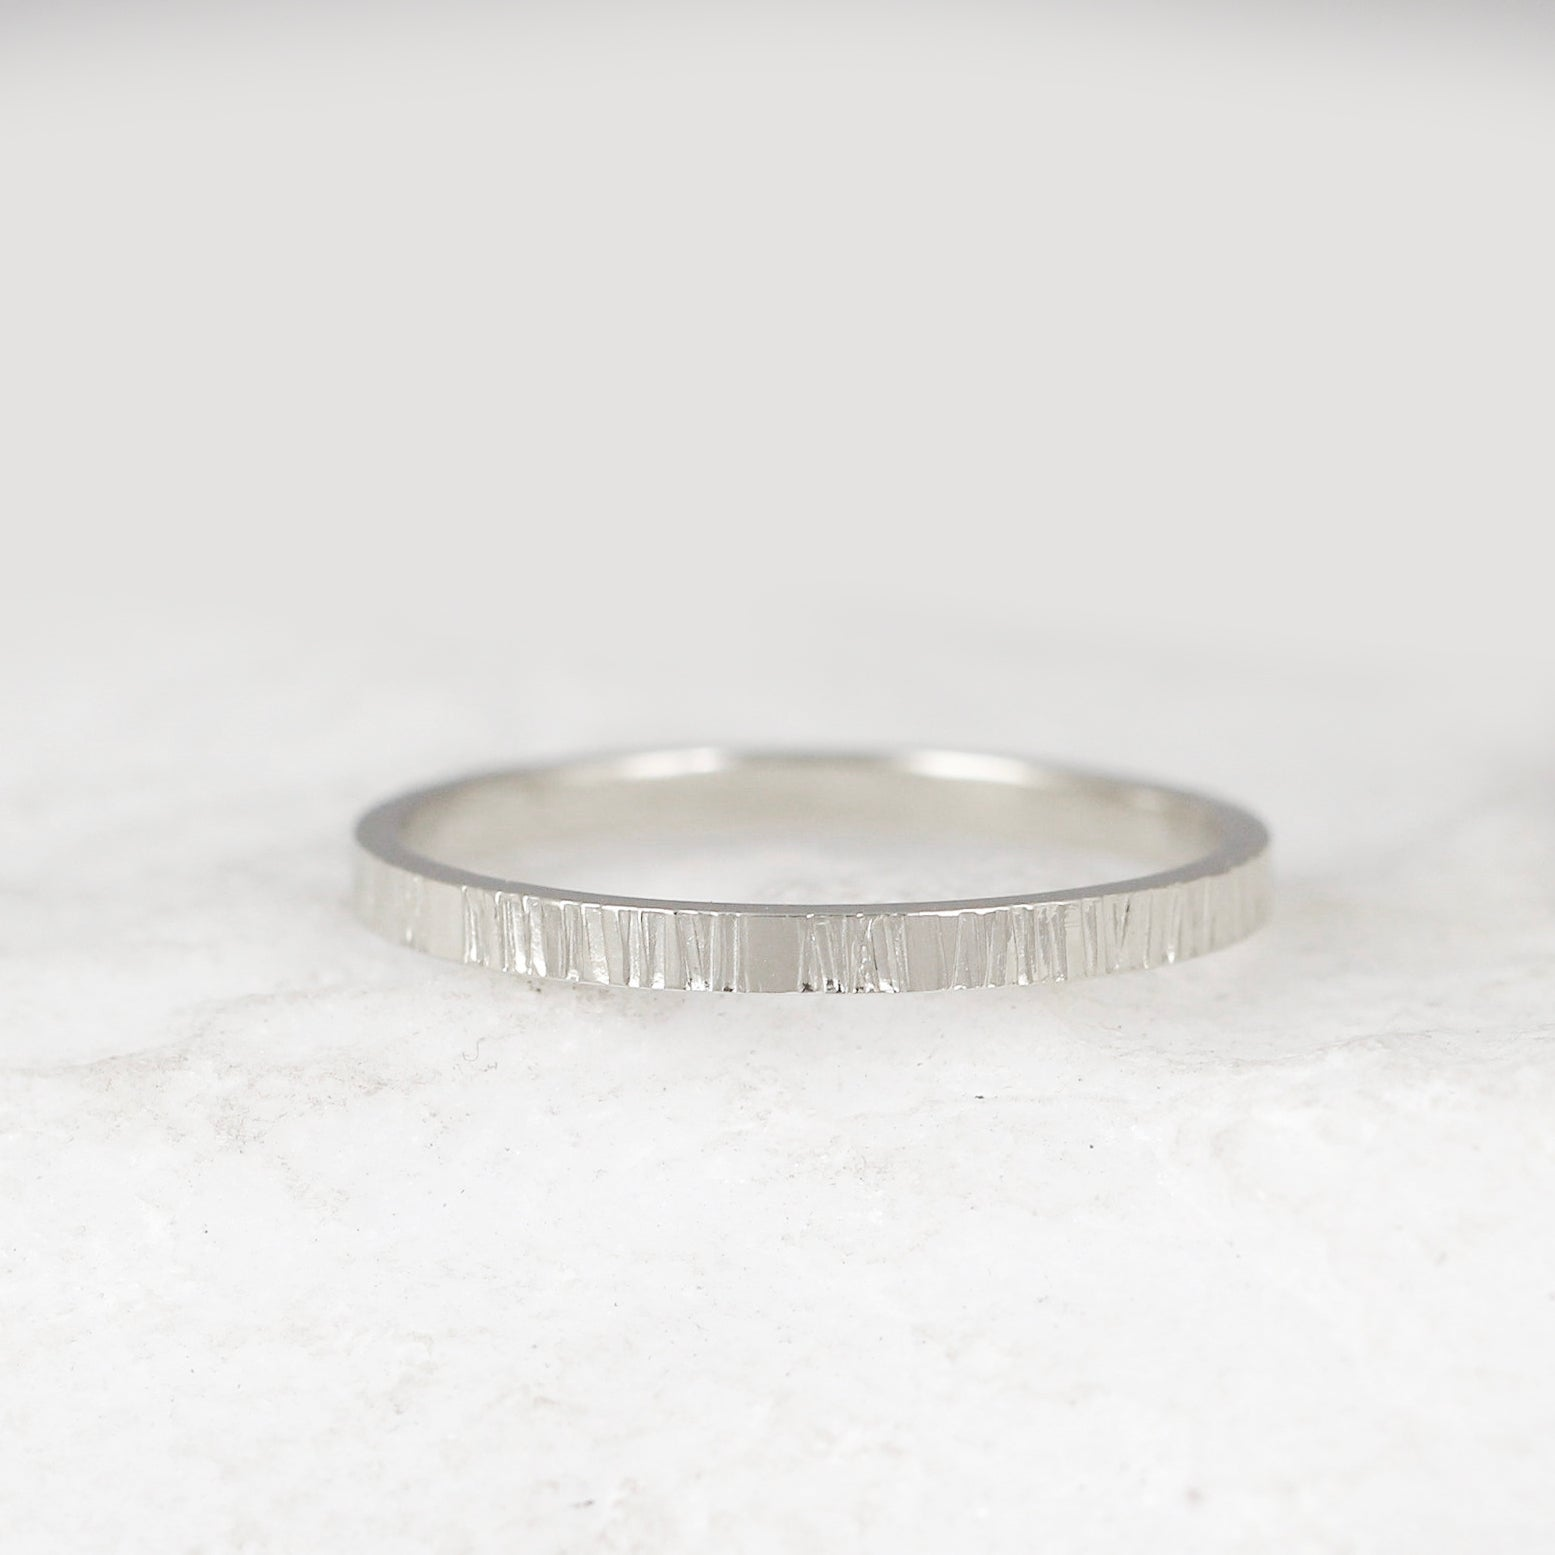 14K White Gold 3mm Lightweight Flat Band Ring